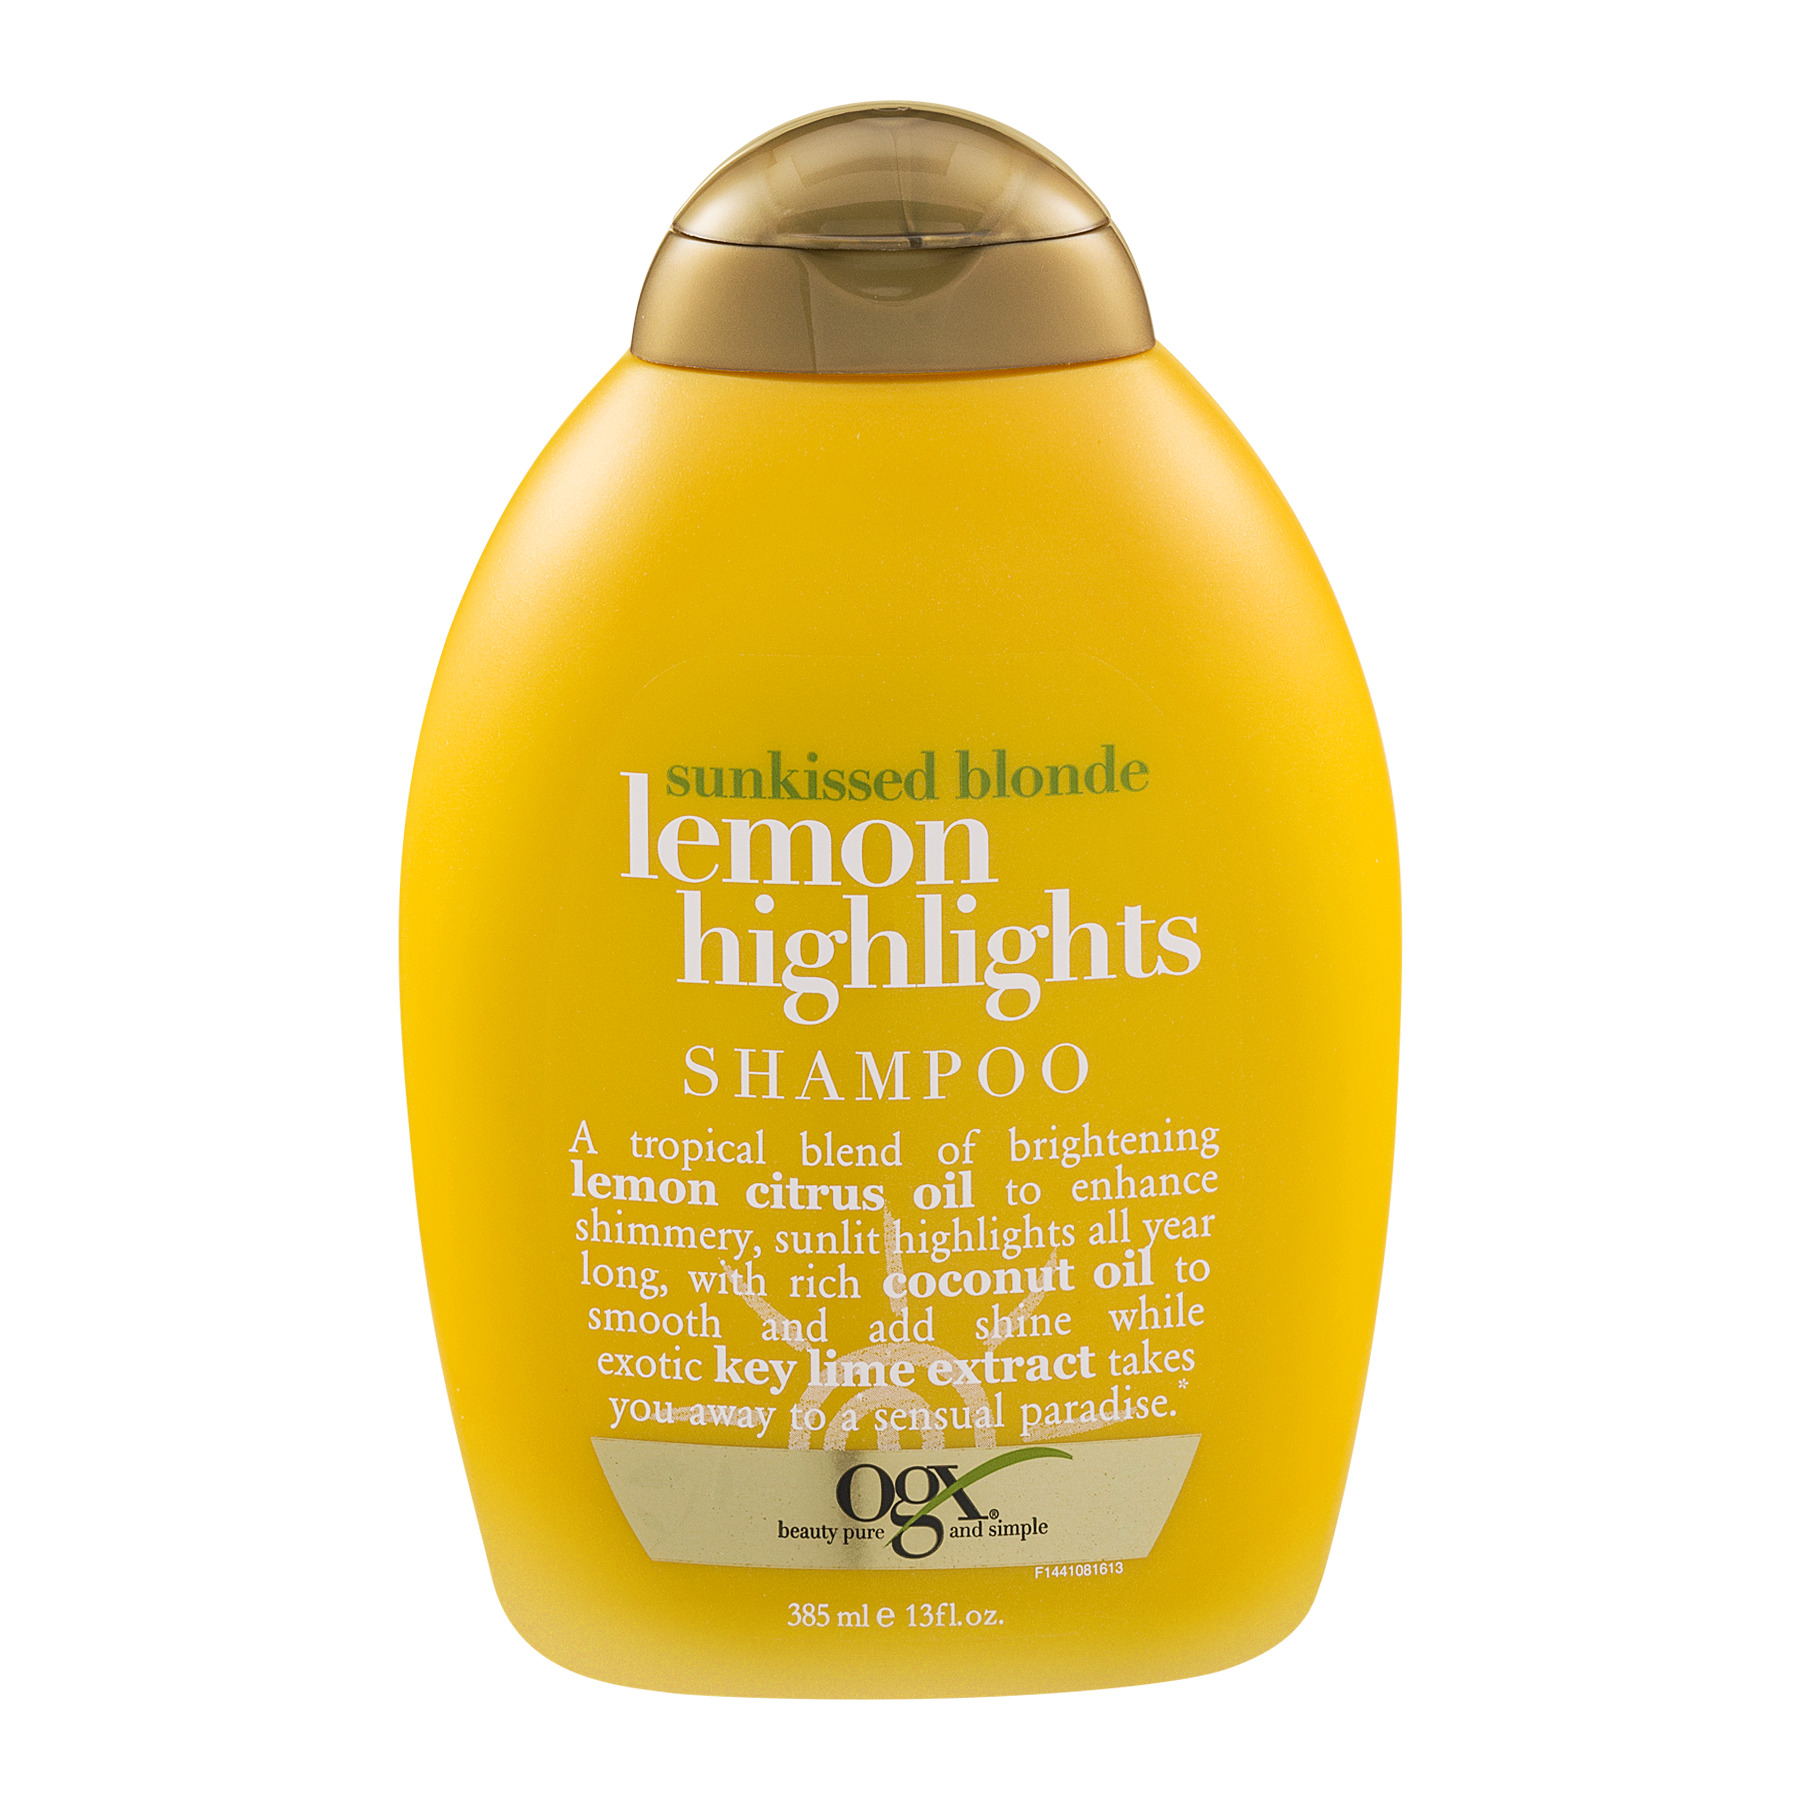 OGX Sunkissed Blonde Lemon Highlights Shampoo, 13.0 FL OZ